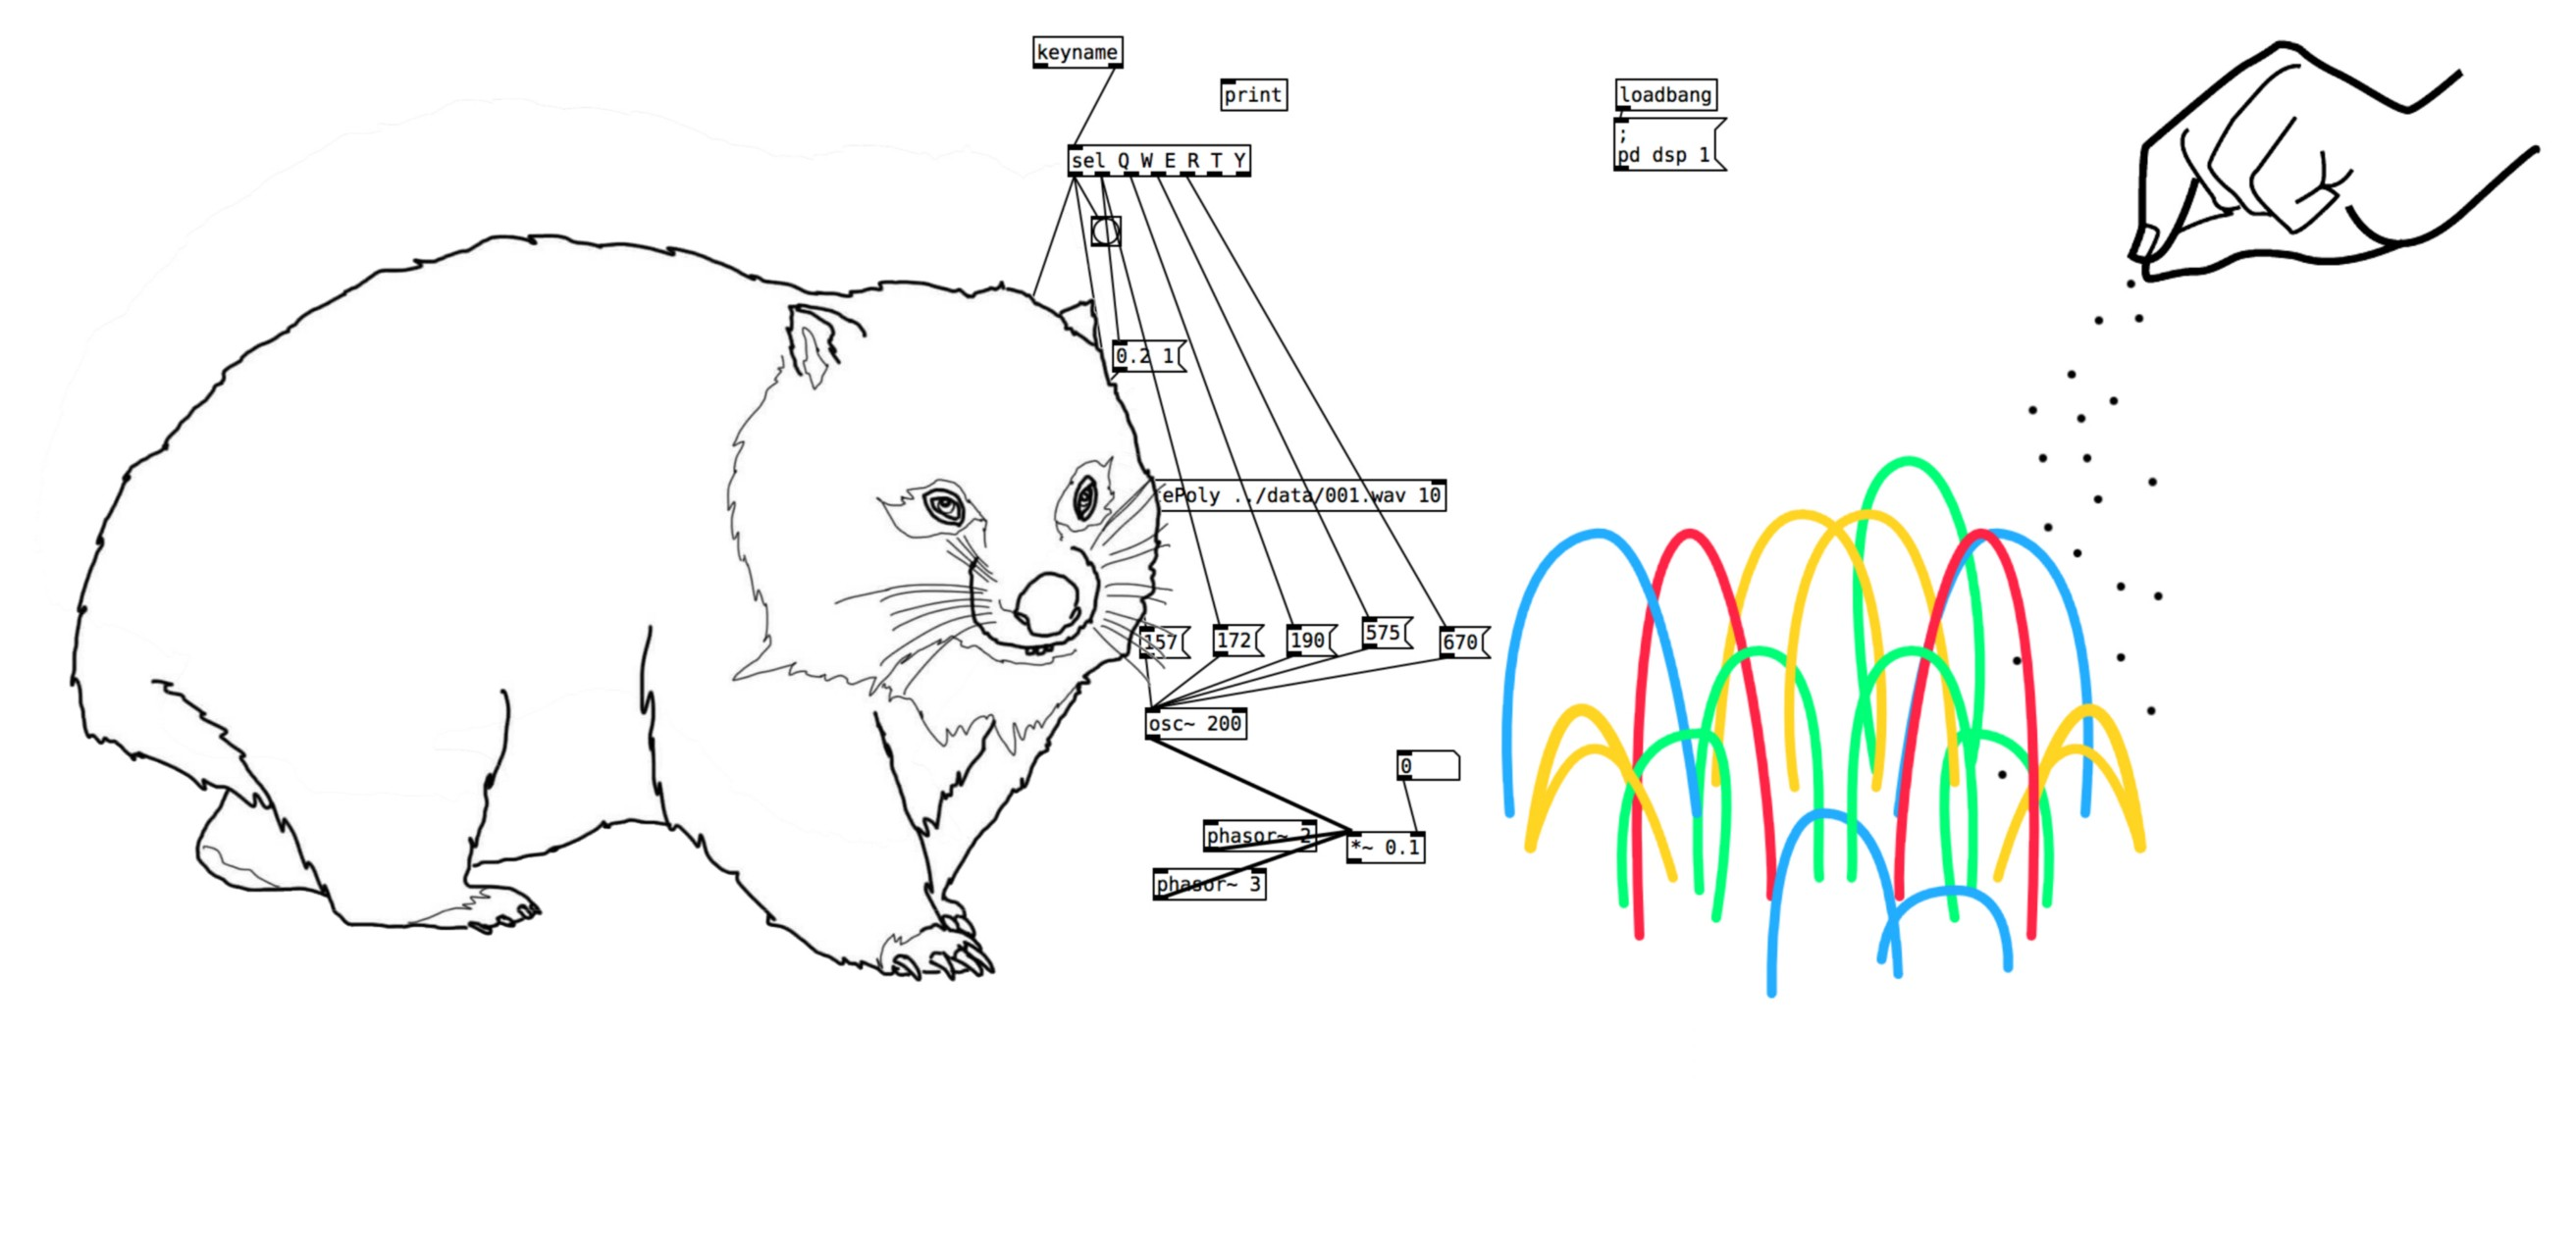 Visual Music & Machine Learning Workshop for Kids - Becoming Human